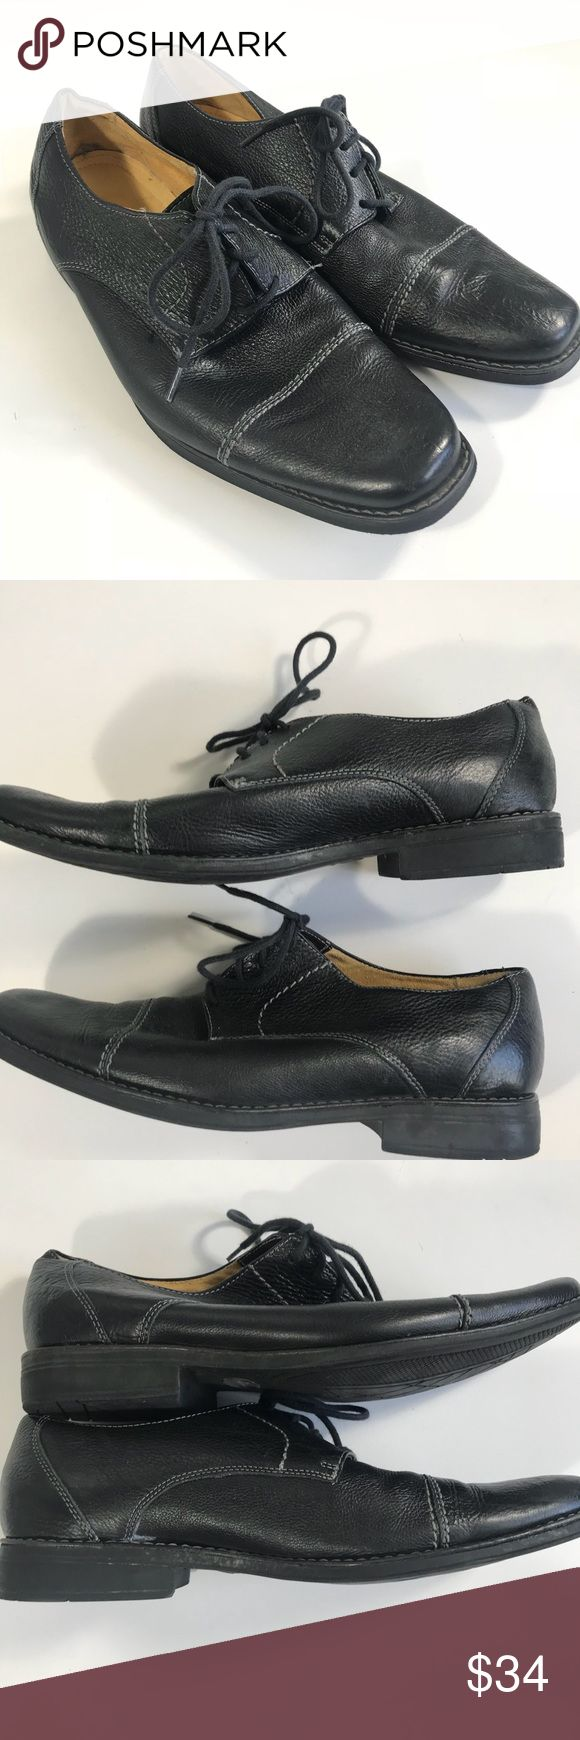 Sandro Moscoloni Size 11.5 D 17305 Black shoes Sandro Moscoloni Size 11.5 D 17305 Black, Pebble Grain Leather, Cap Toe Oxfords  Condition Good preowned shape see photos  Men's size 11.5 D Sandro Moscoloni Shoes Oxfords & Derbys